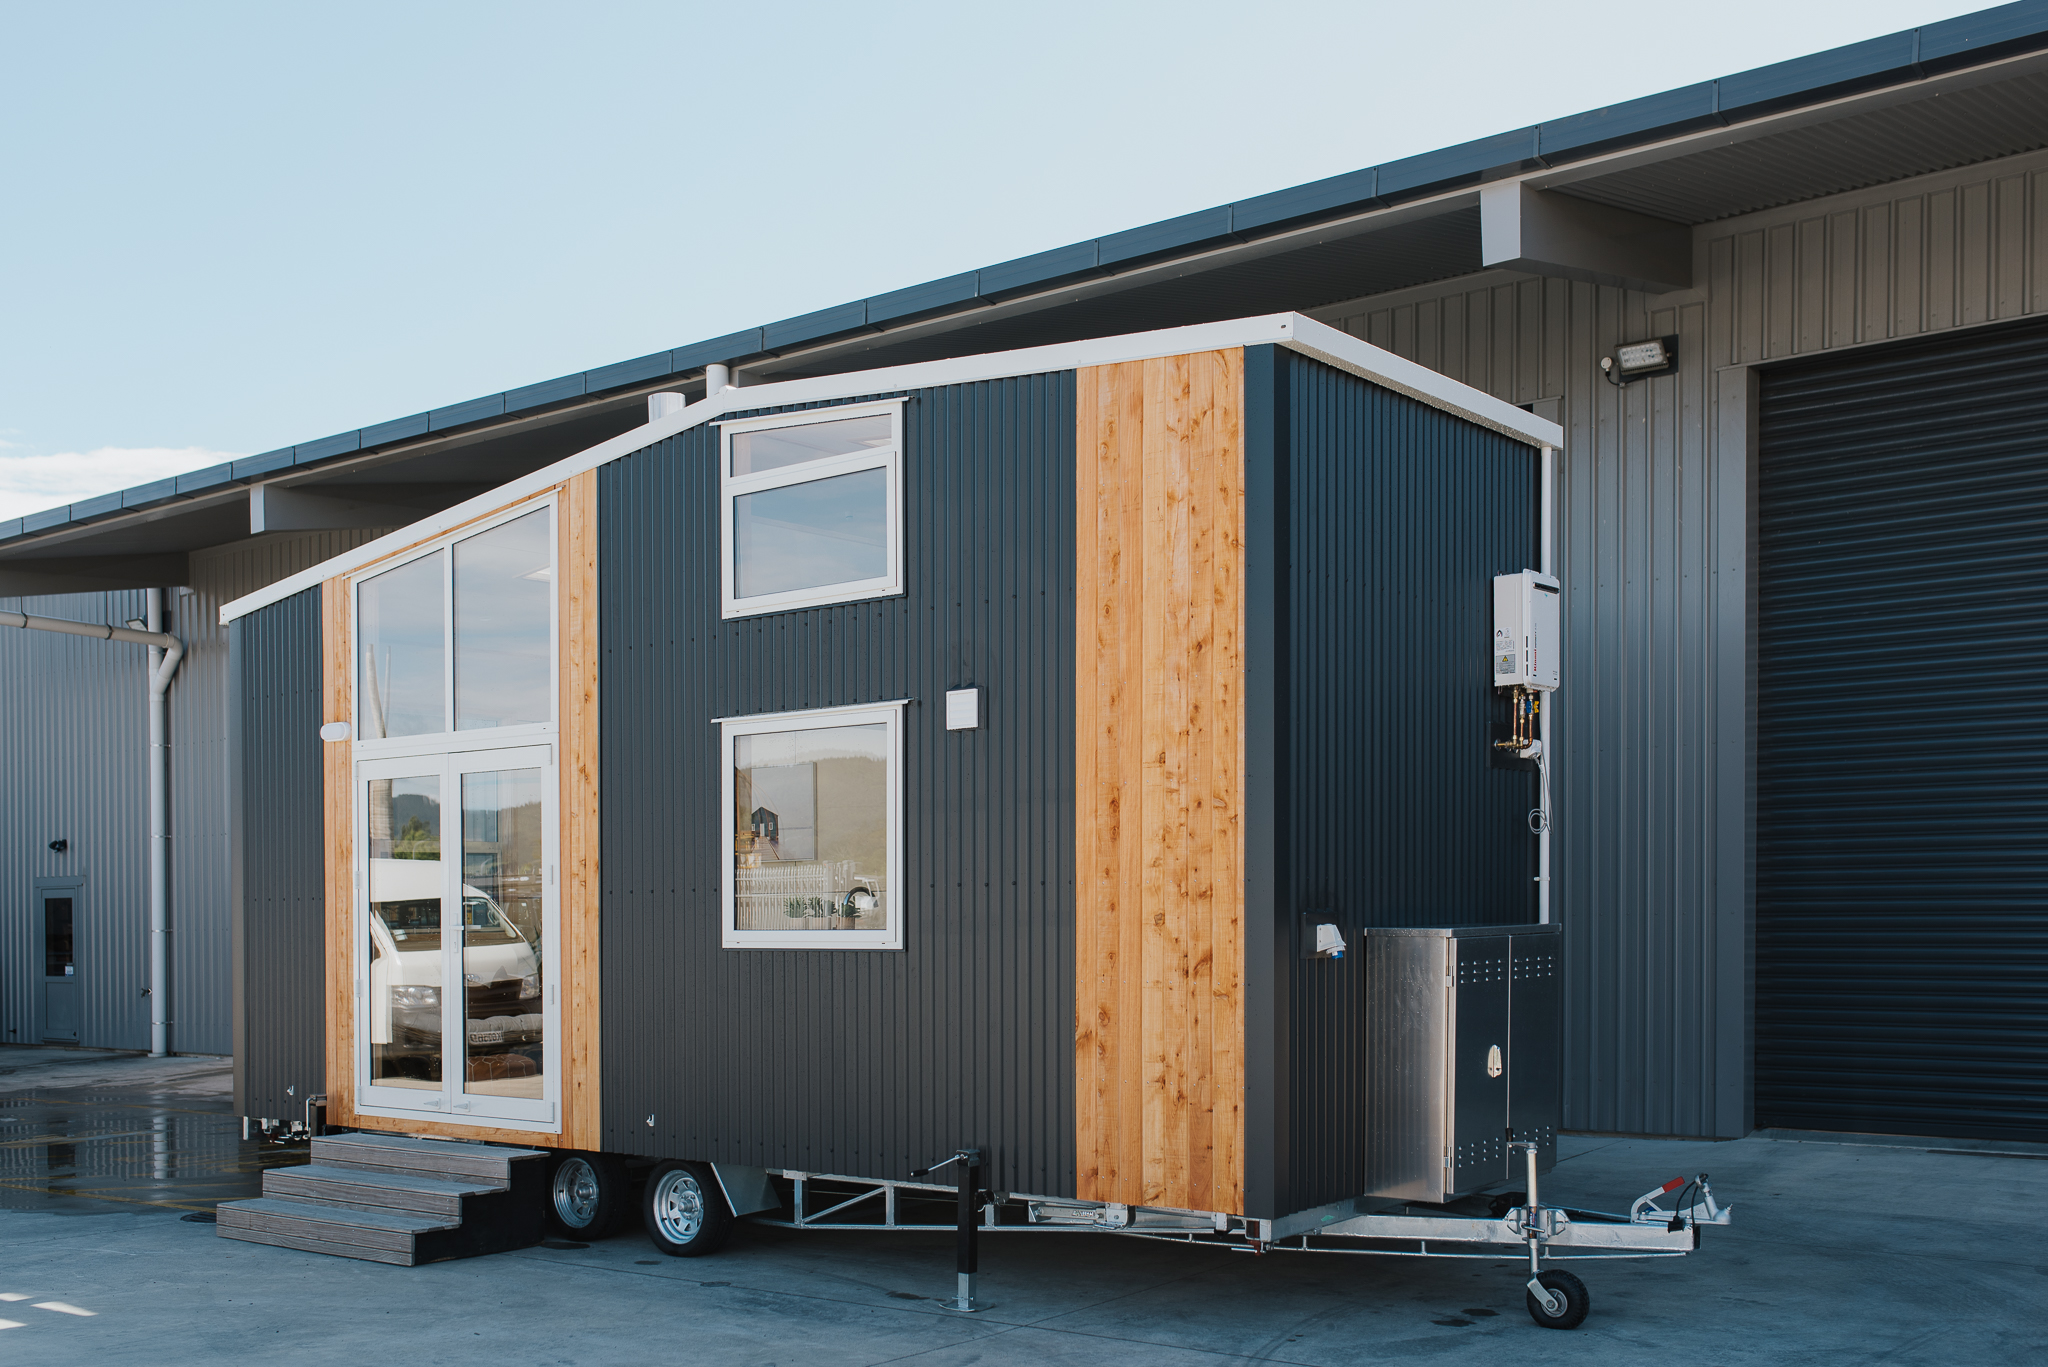 The Kapiti Tiny House measures 7.2 m (23 ft) long